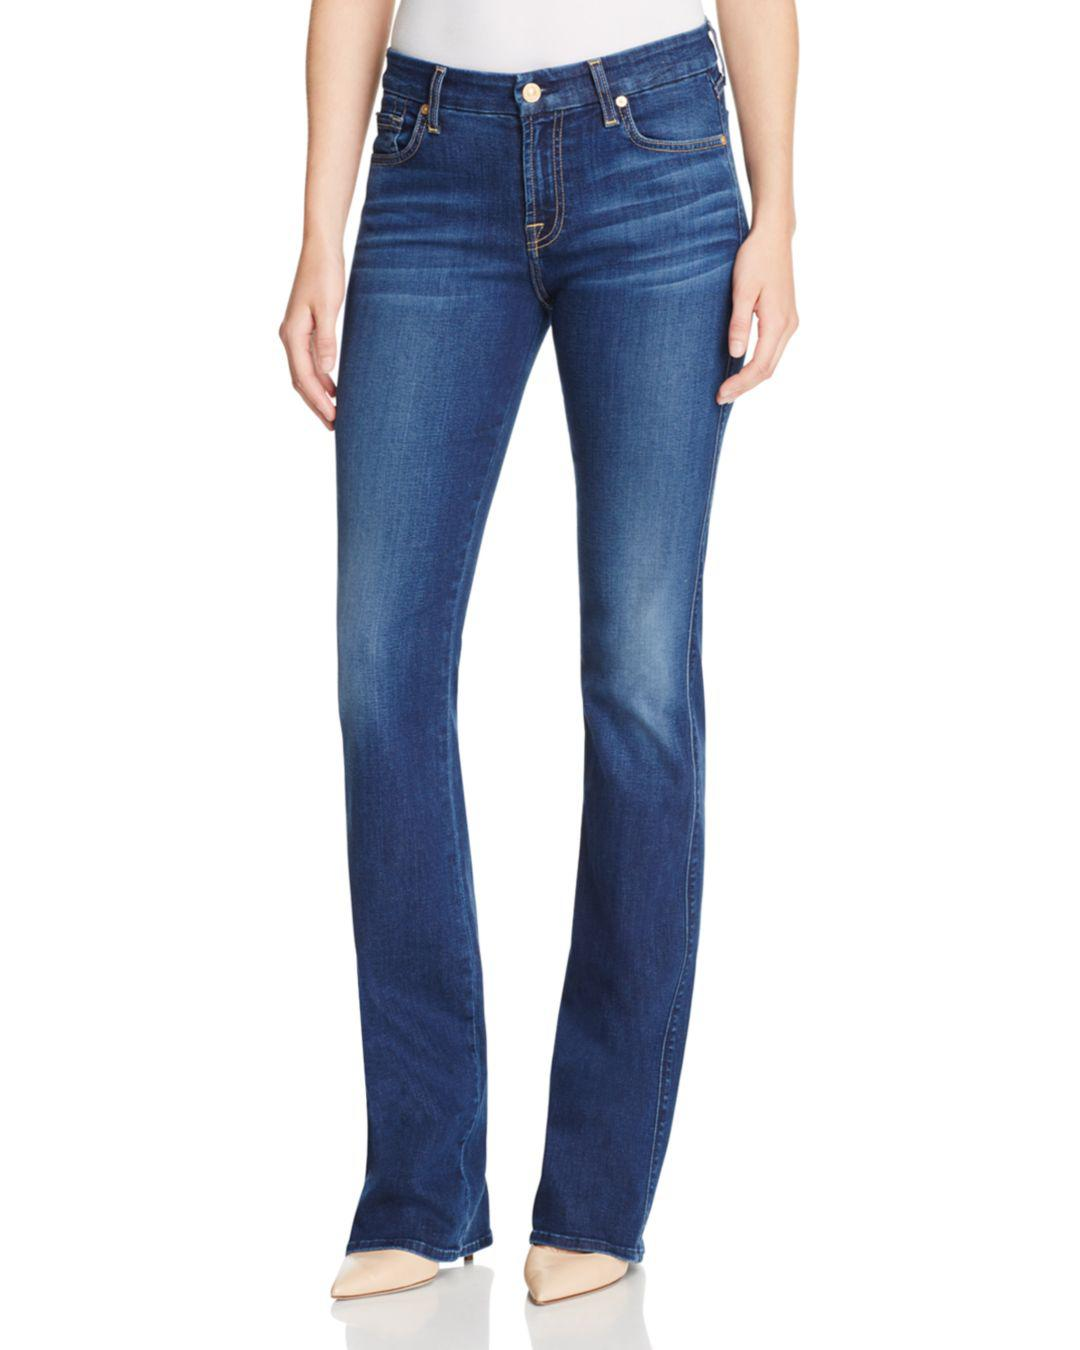 6d4214c918a5b 7 For All Mankind B(air) Kimmie Bootcut Jeans In Duchess in Blue - Lyst